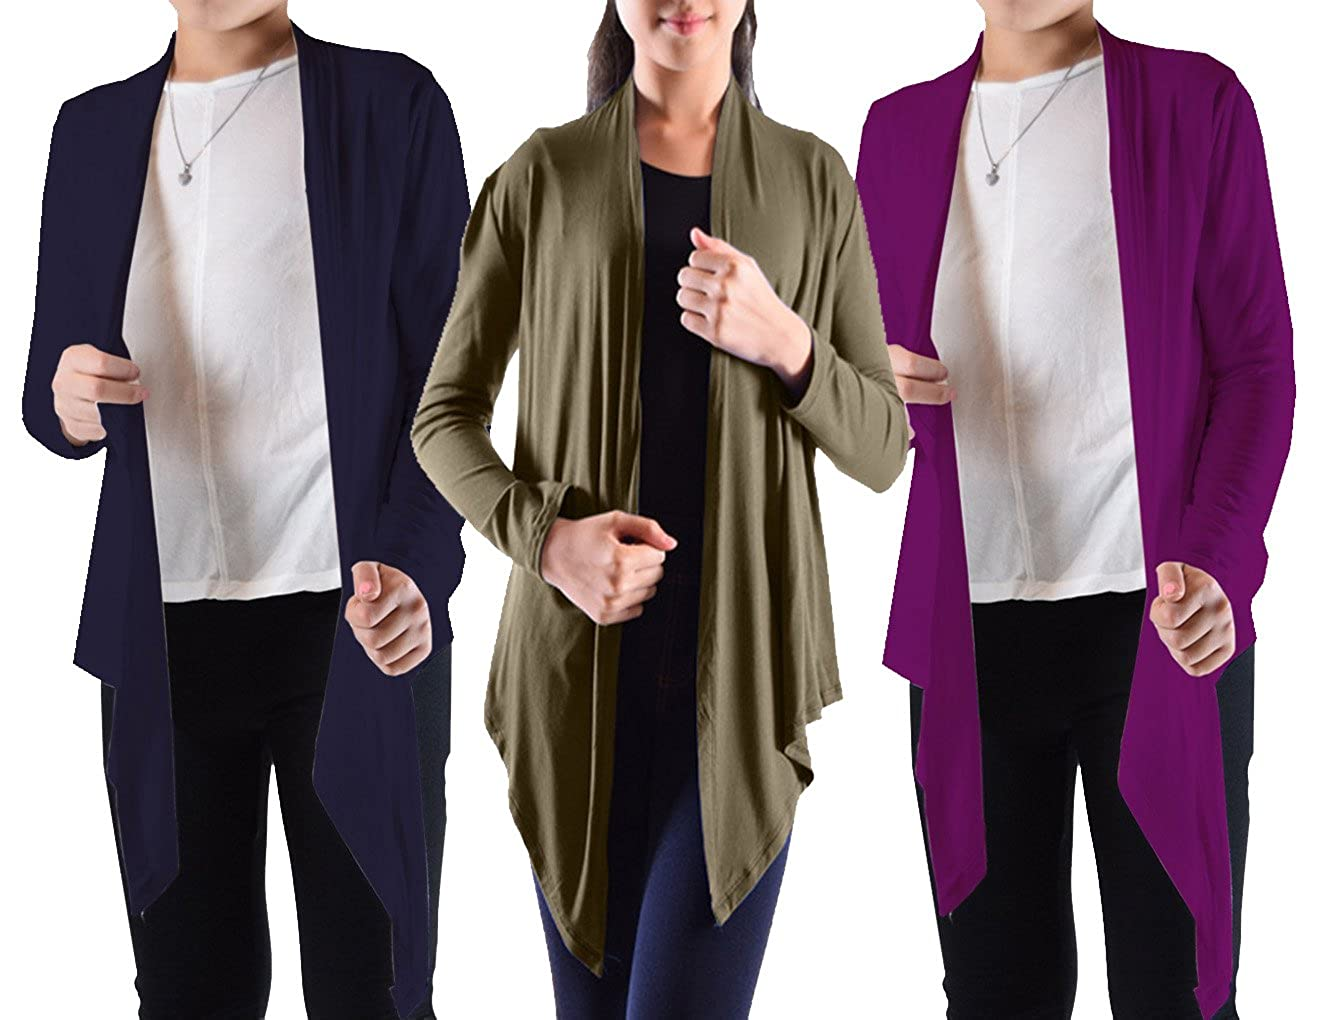 Dinamit Jeans Big Girls' 3 Pack Long Sleeve Flyaway Cardigan Sweater (3-Pack) 3pk-8198K-pp